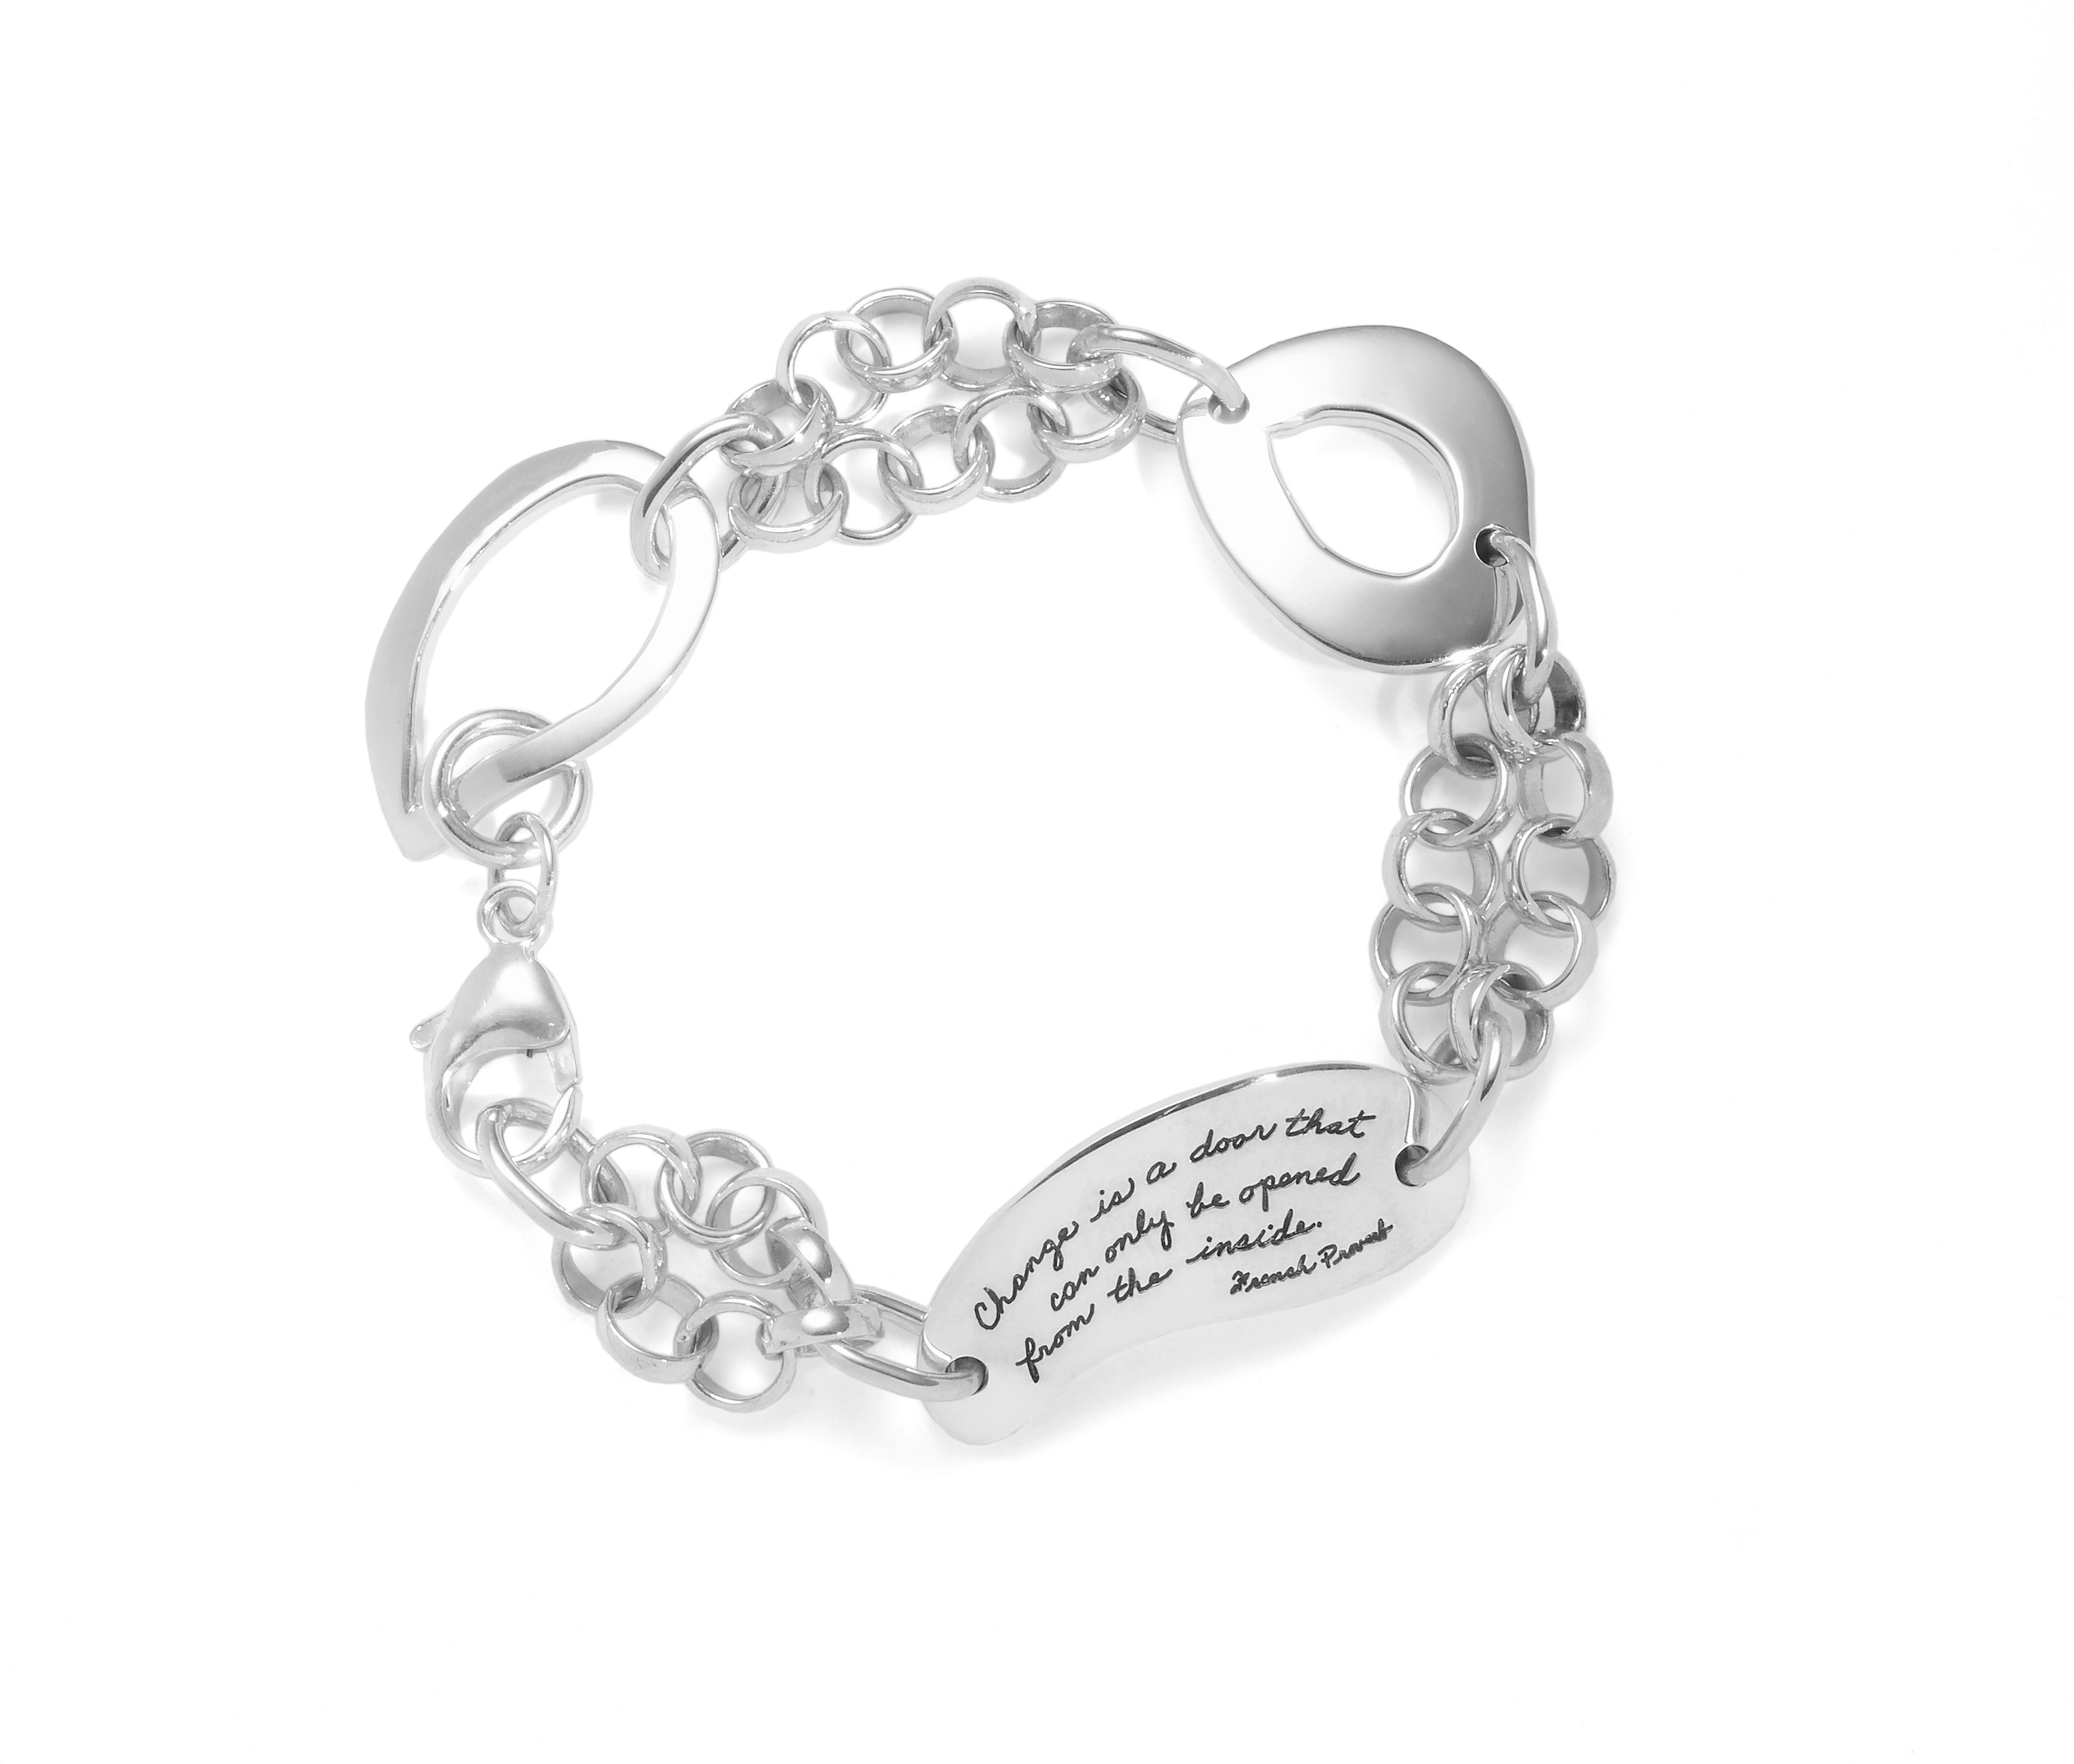 Bracelet with engraved quote - I would not mind if I grow old as long as my true love is near. Baba Farid | BB Becker | Inspirational Jewelry